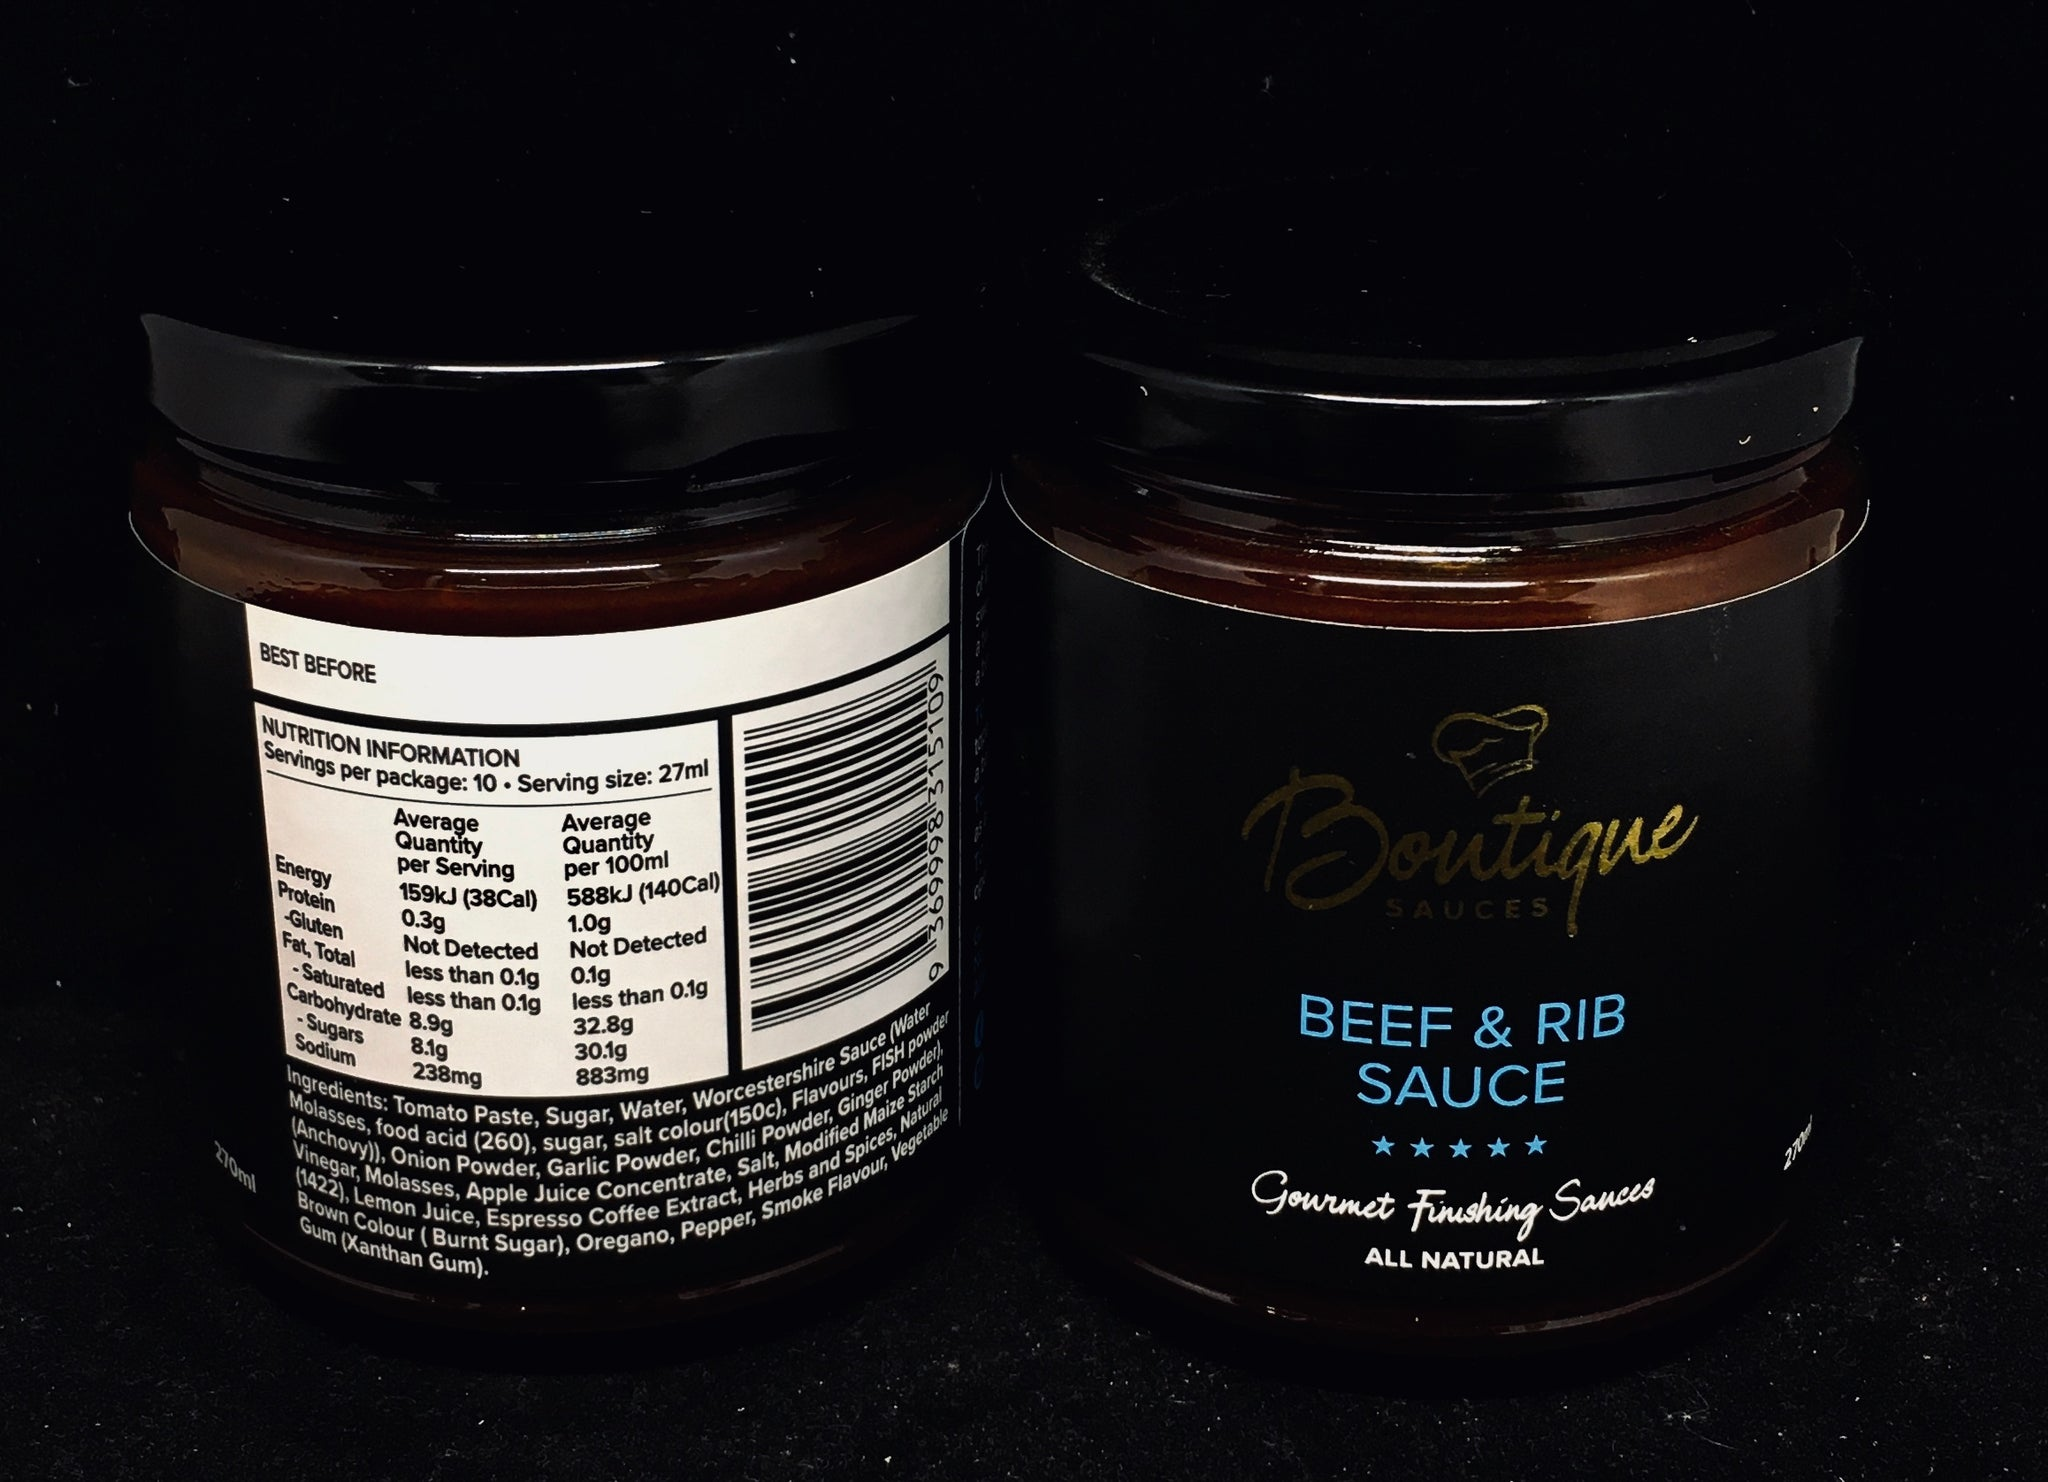 Boutique Sauces - Beef & Rib